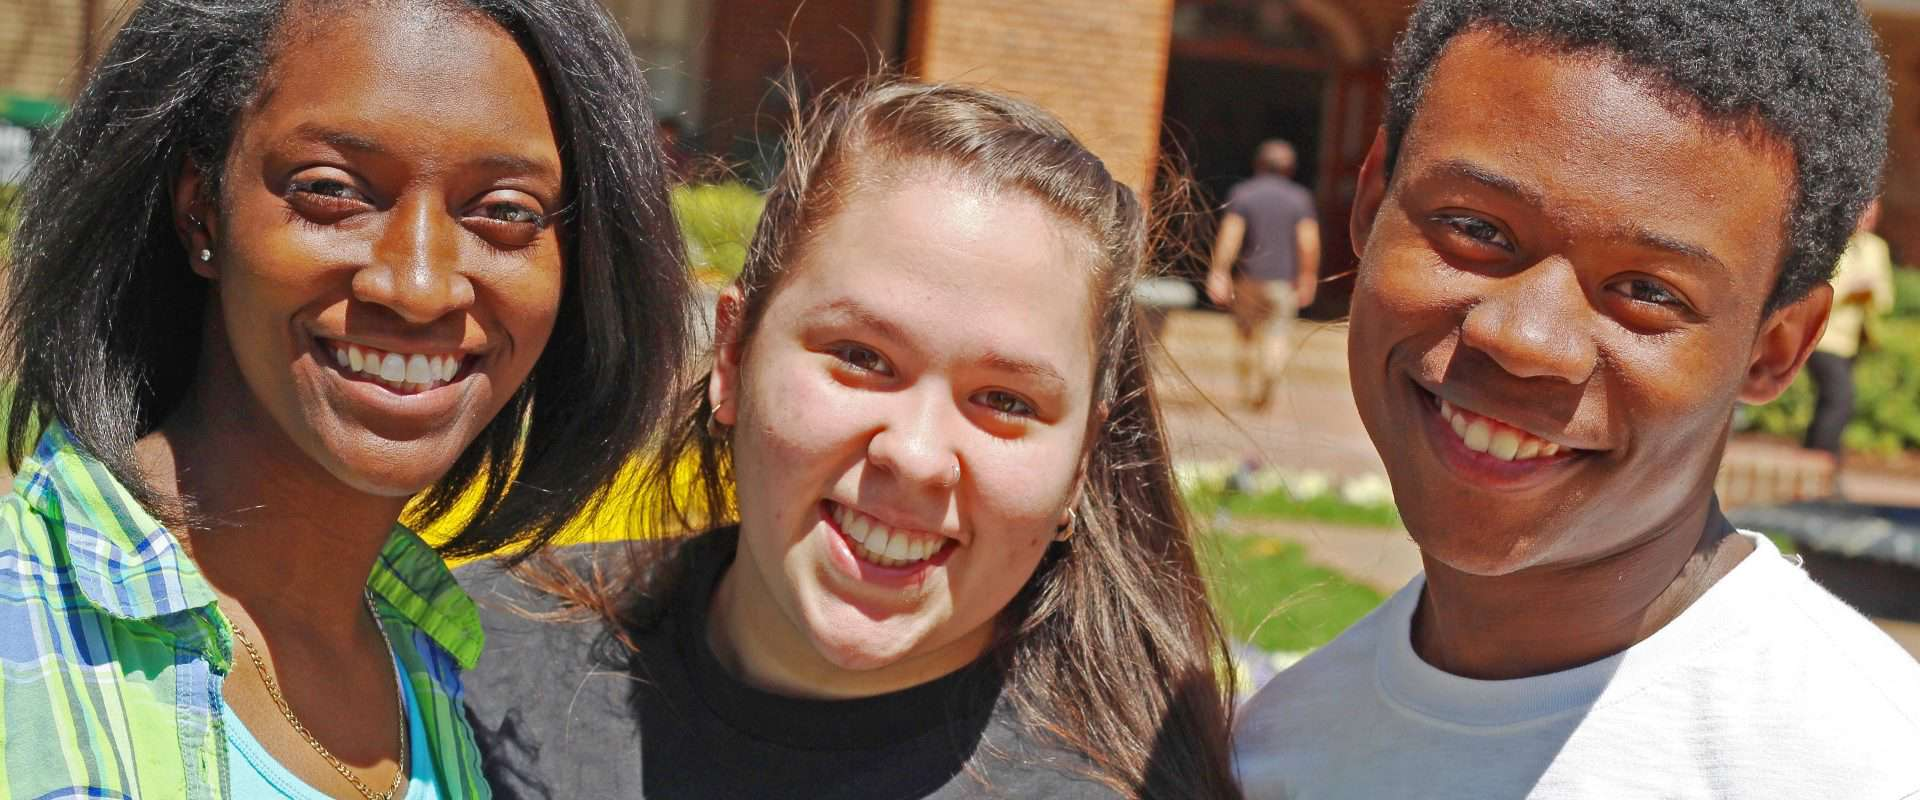 WPU students smile at school event.